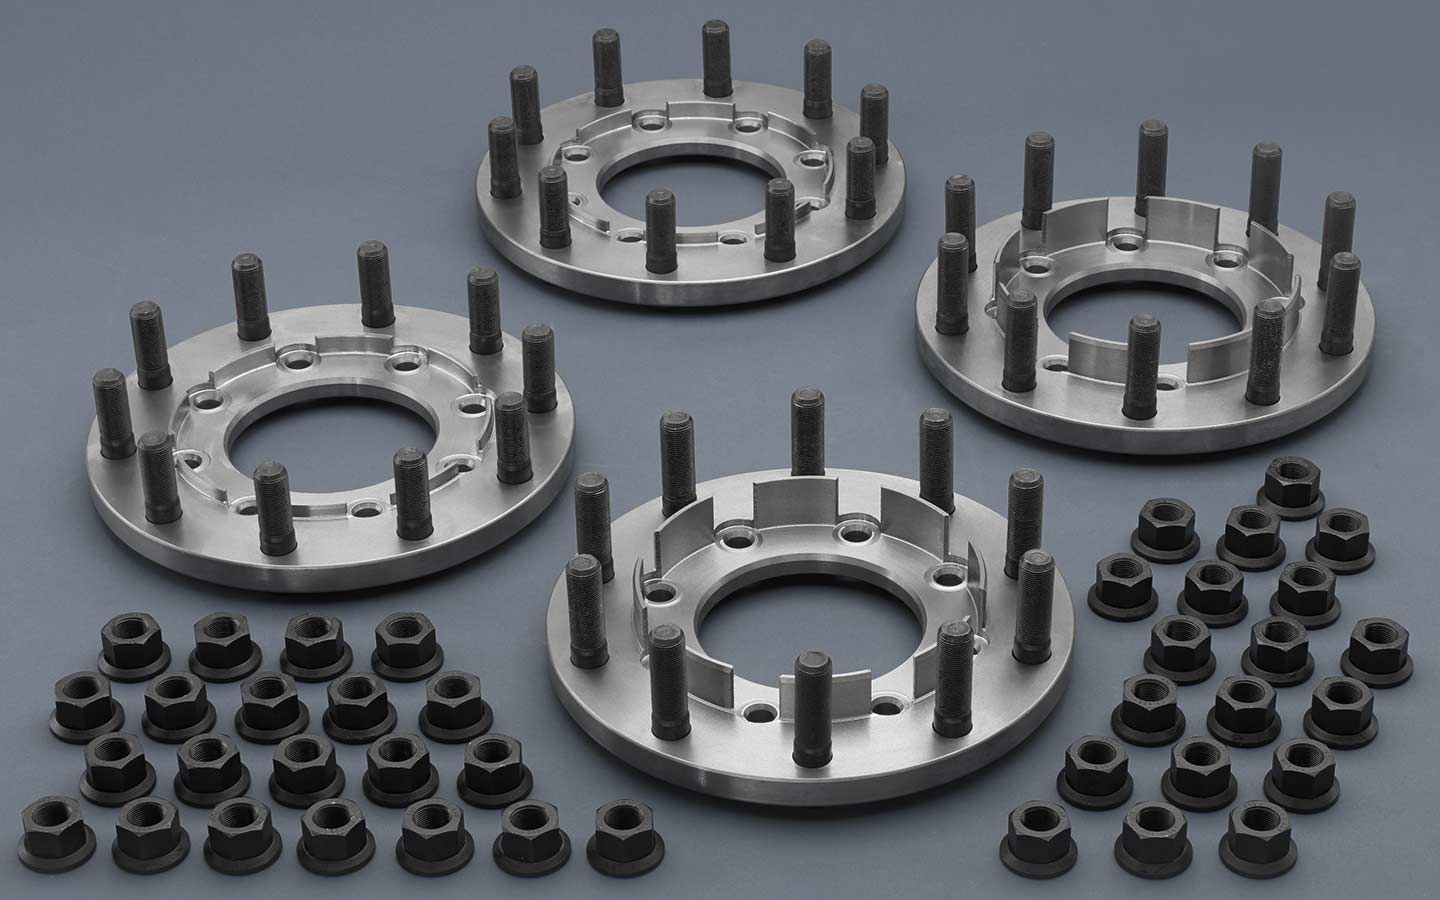 Big Wheel Adapters for converting 3/4 and 1 ton trucks to duallys